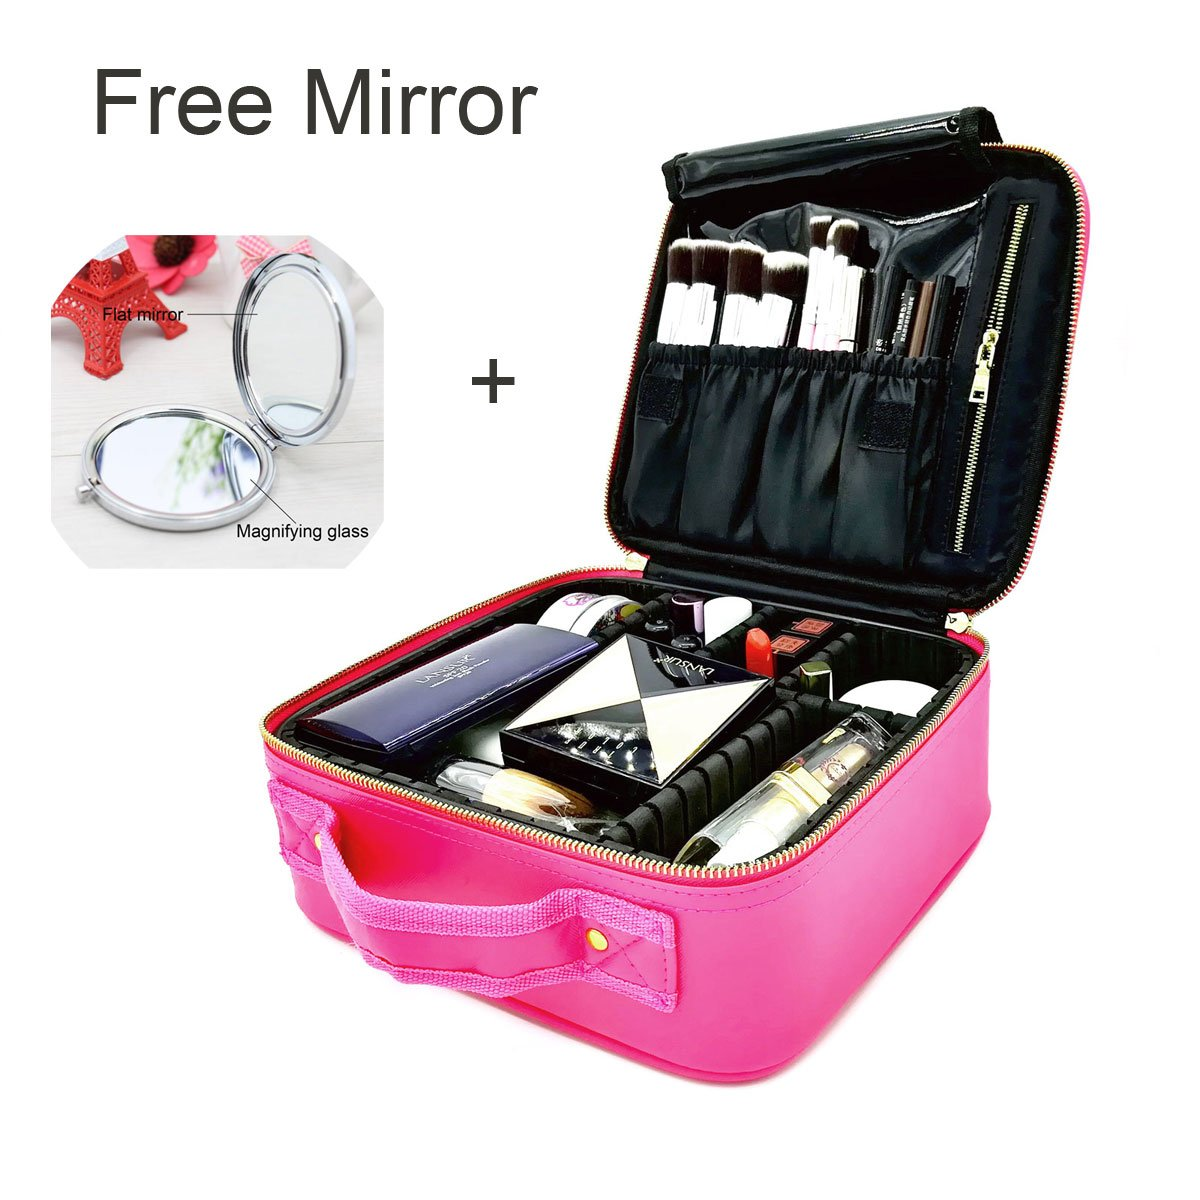 Makeup Train Case/Cosmetic Bags, PU Leather Portable Makeup bag/Organizer 10.2'' Travel Cosmetic Case with Adjustable Dividers and Exquisite Small Magic Mirror for Home & Travel [Best Gift for Girls]